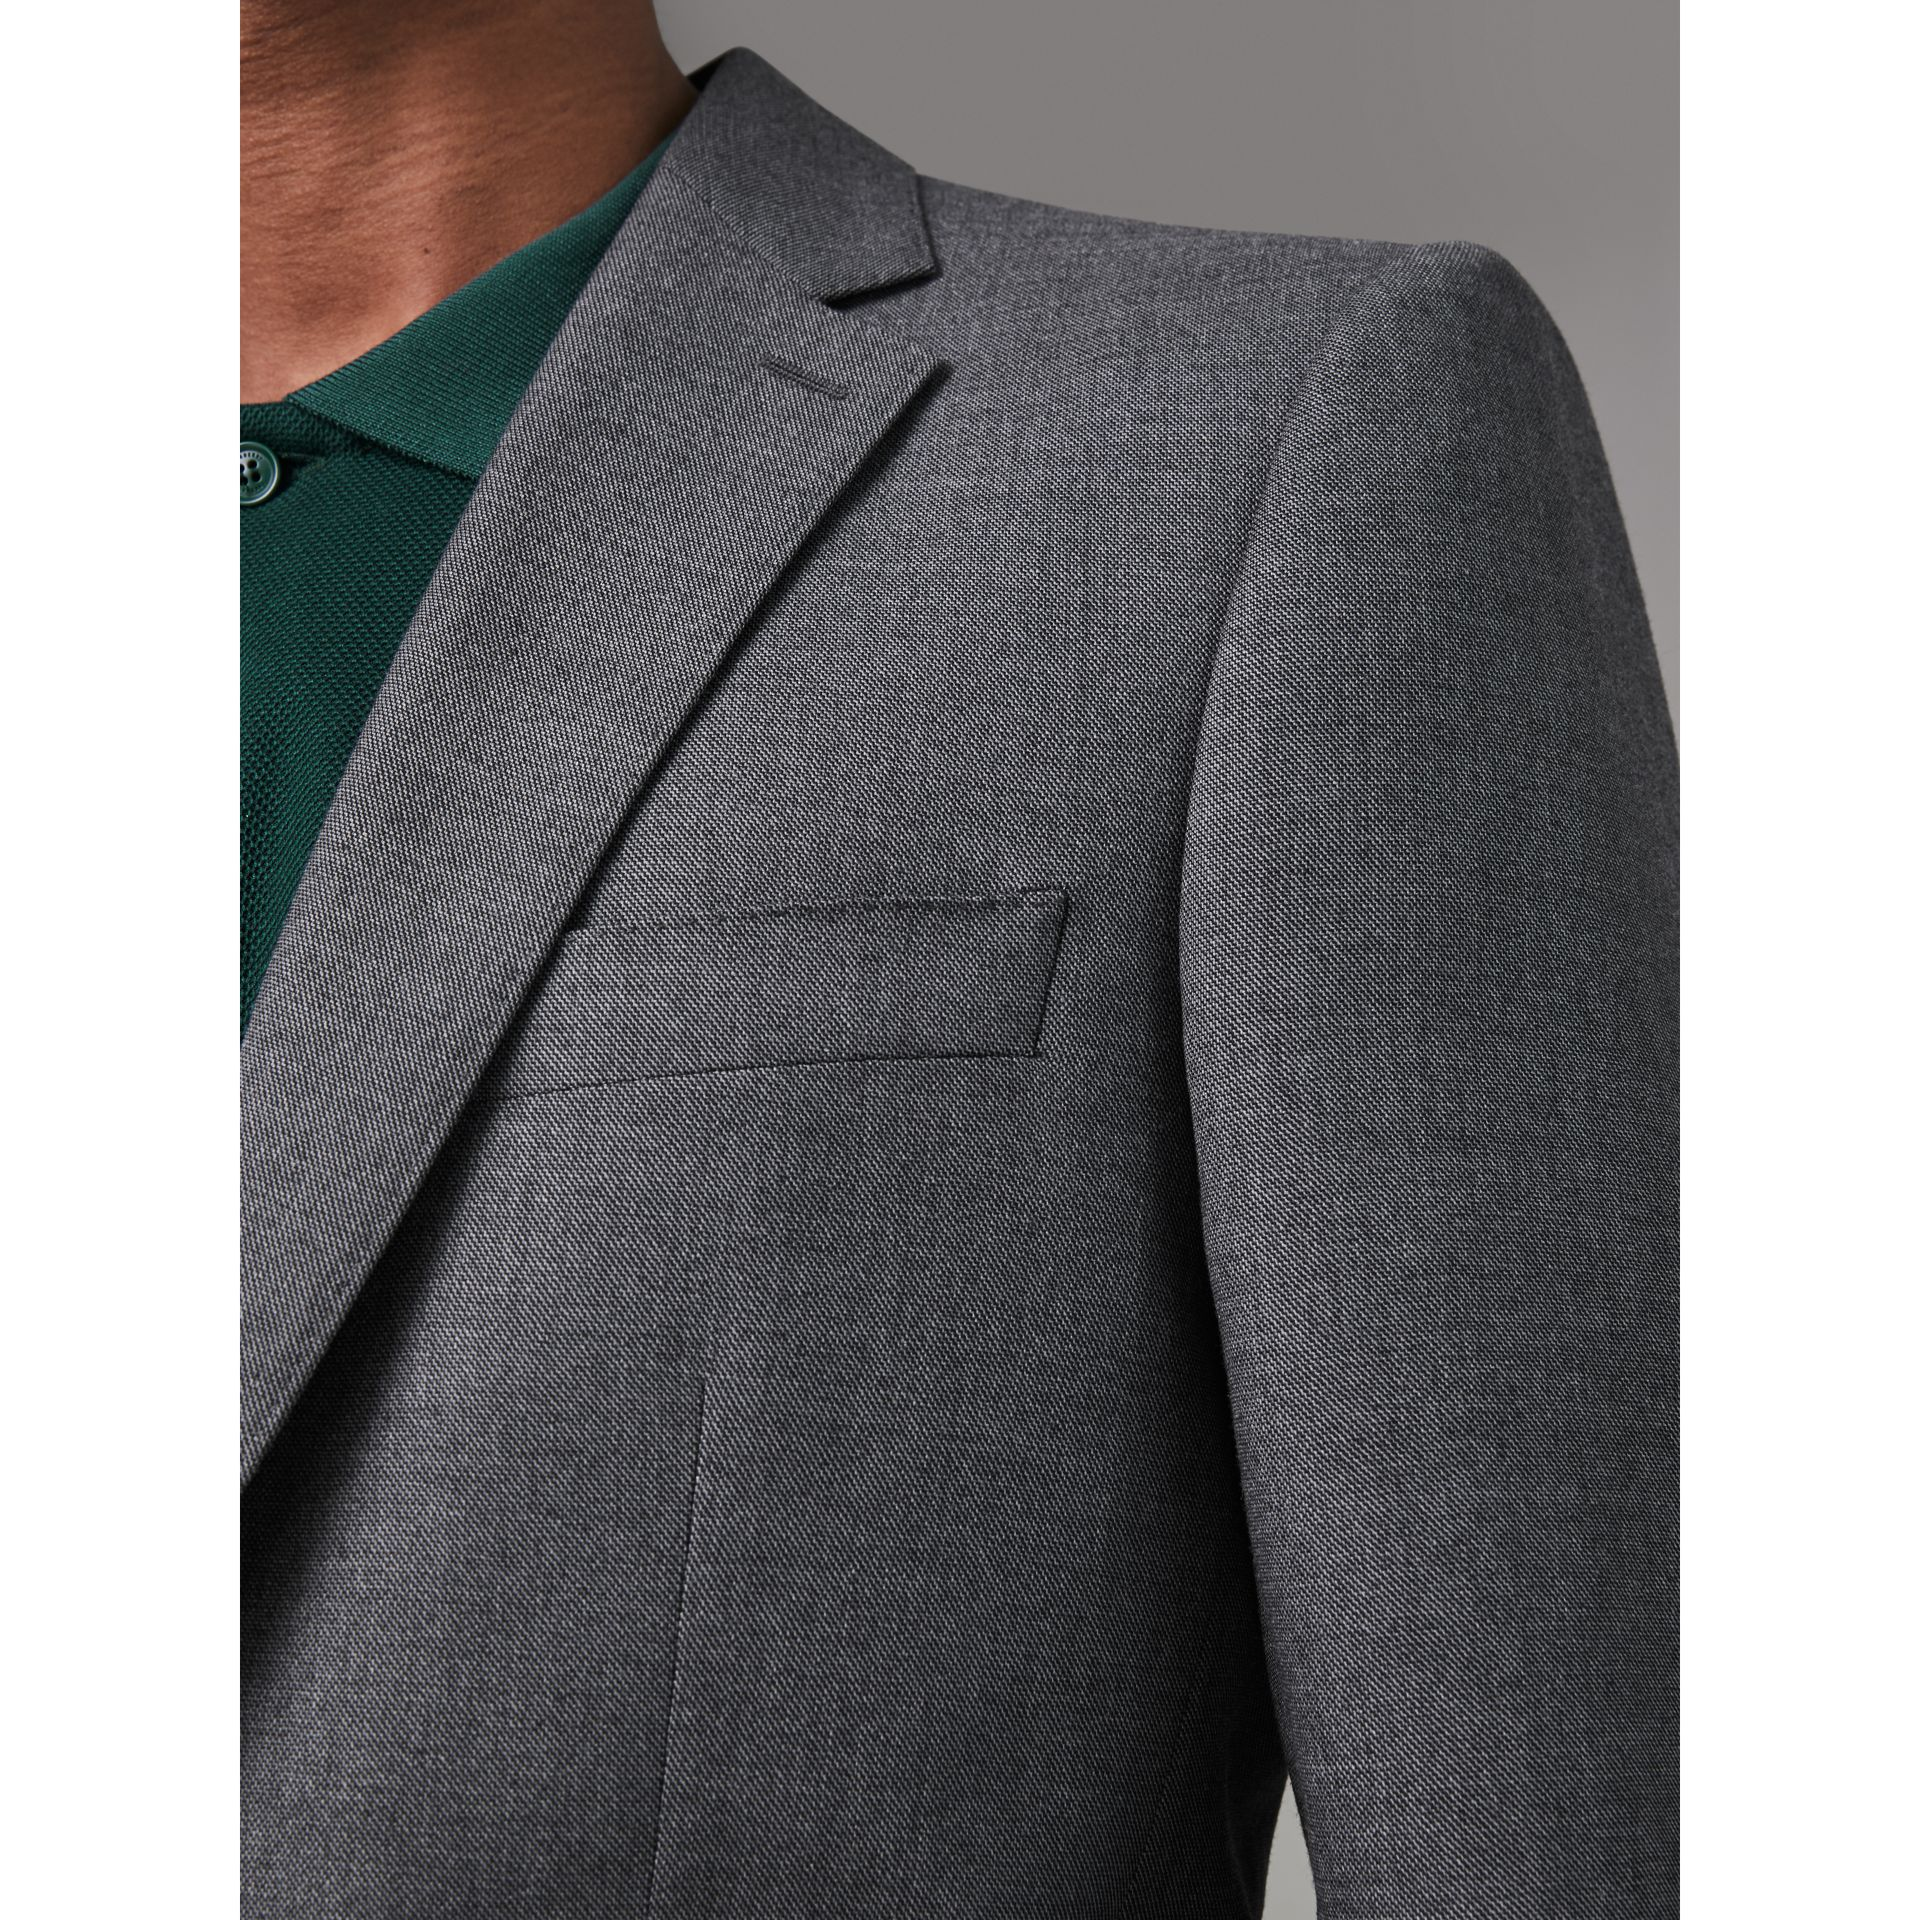 Classic Fit Sharkskin Wool Suit in Mid Grey Melange - Men | Burberry Singapore - gallery image 1